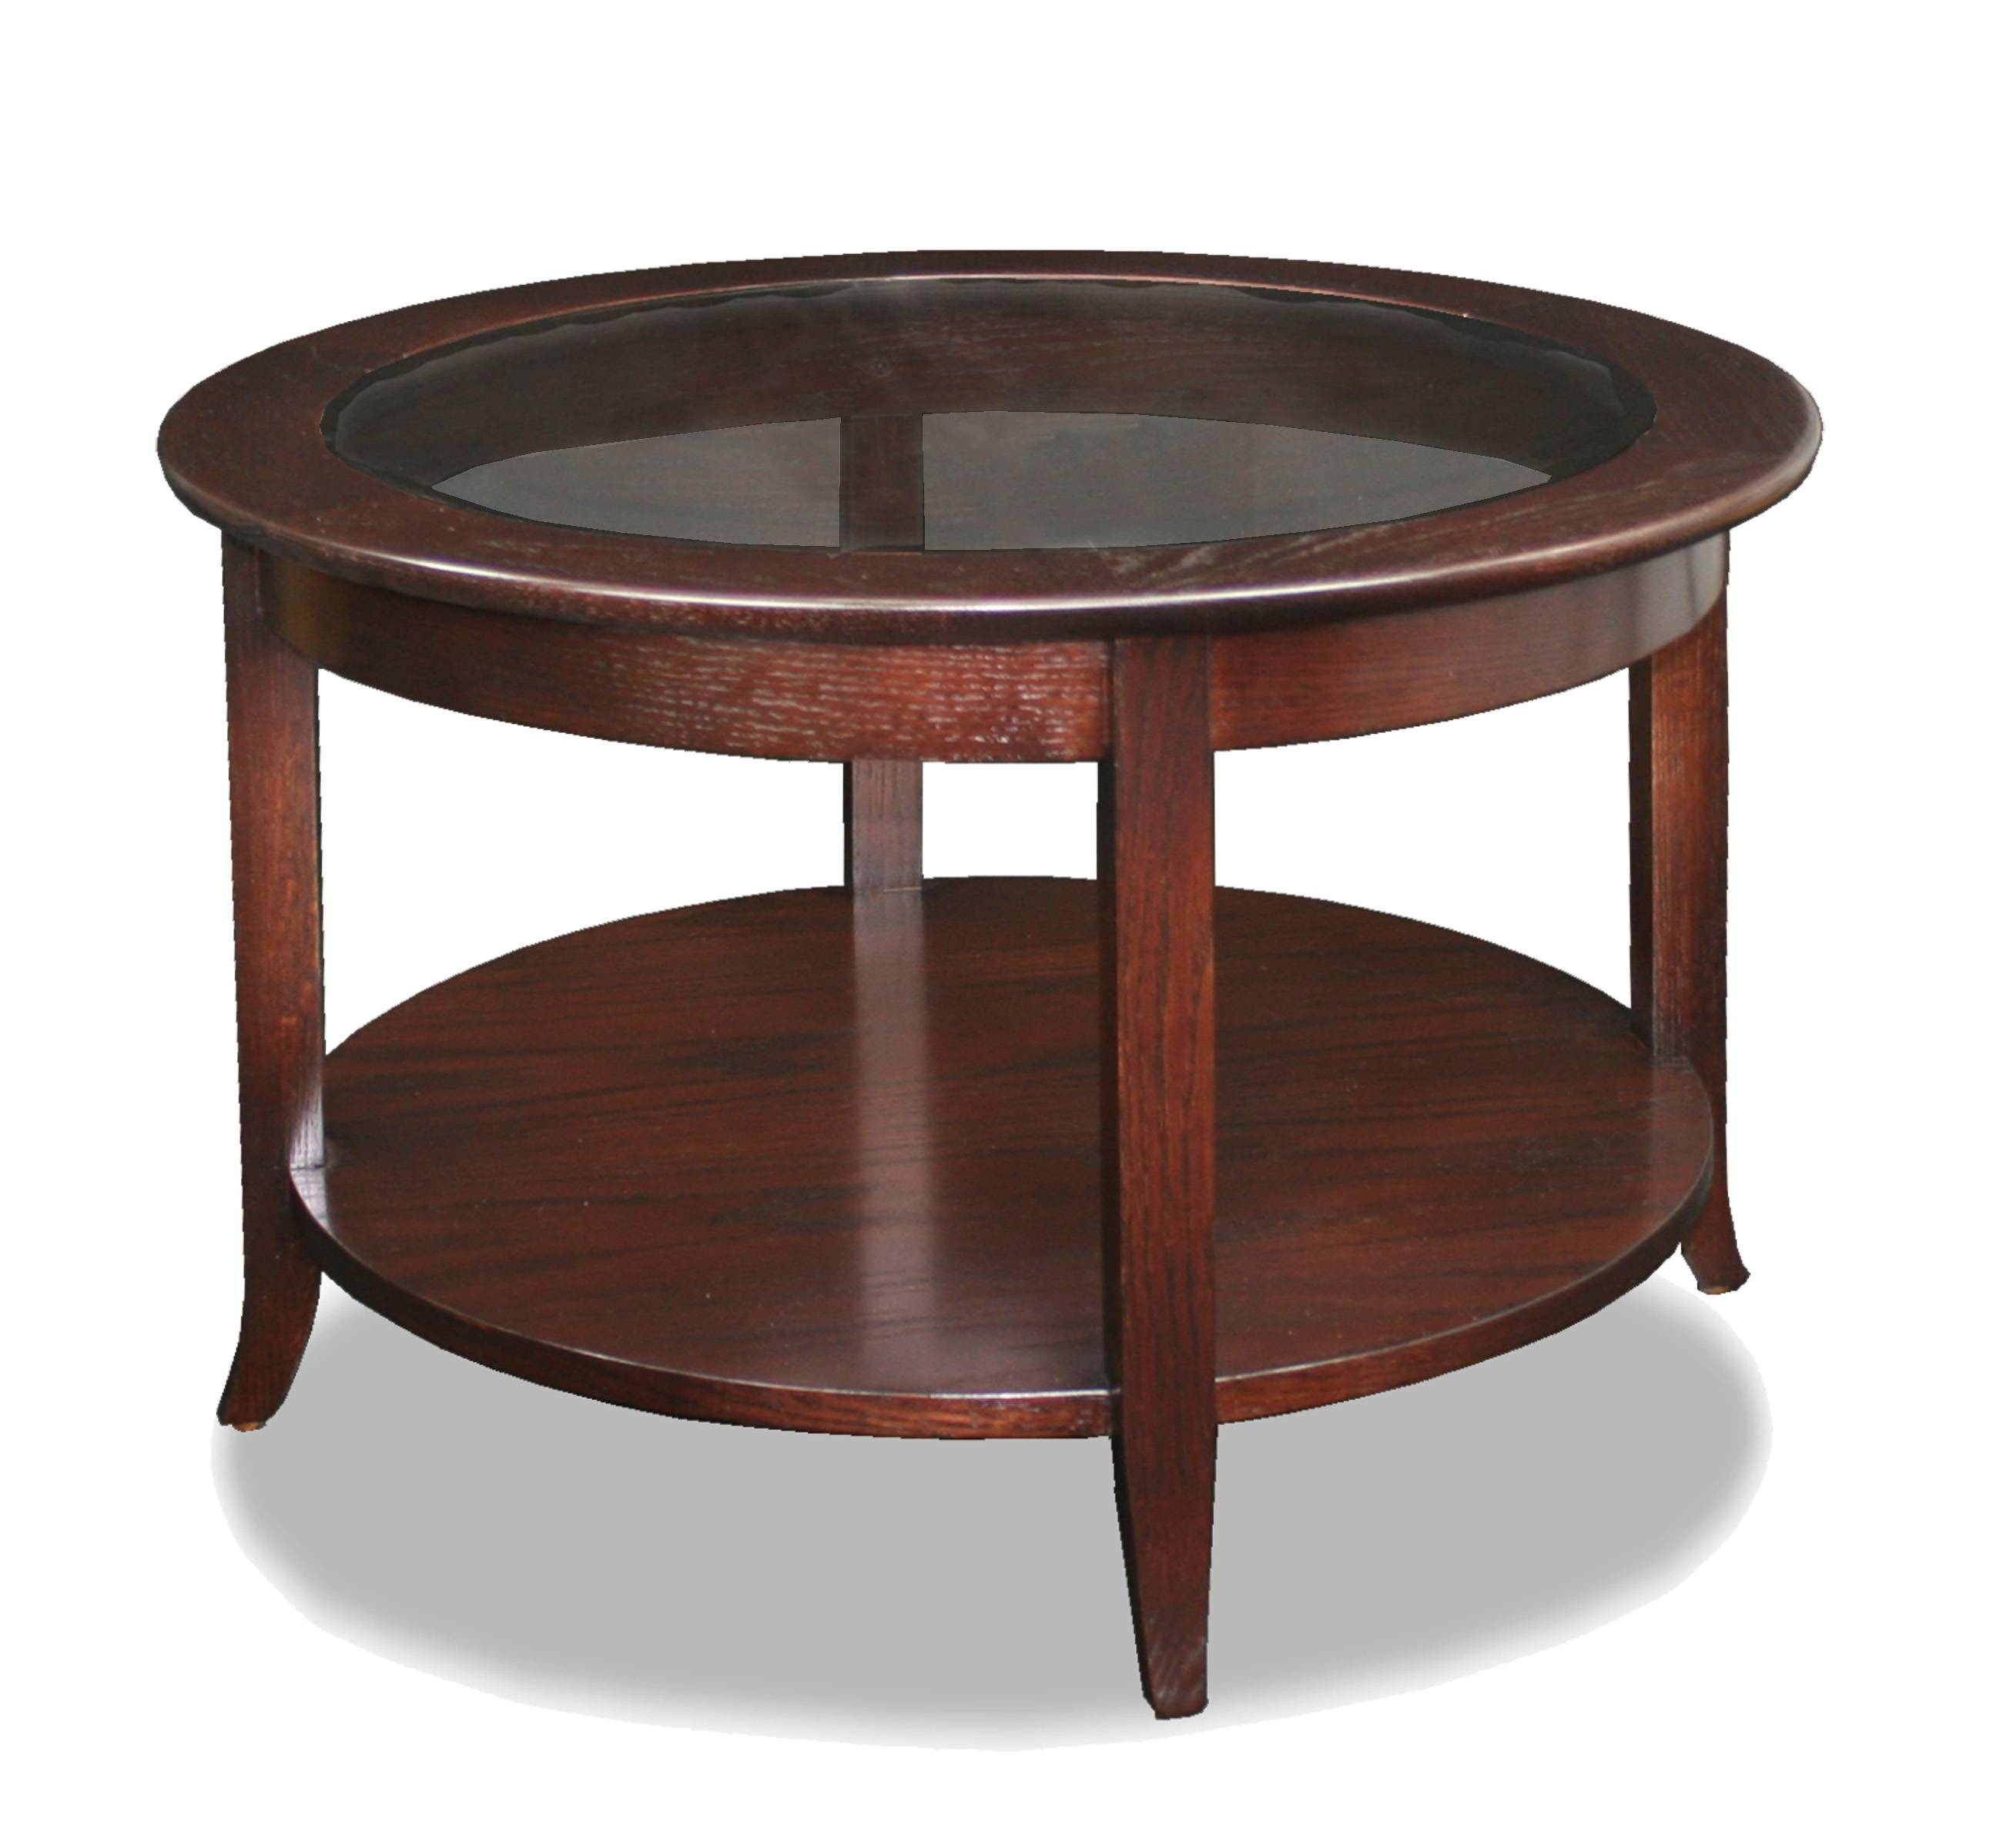 Top 30 of Small Circular Coffee Table